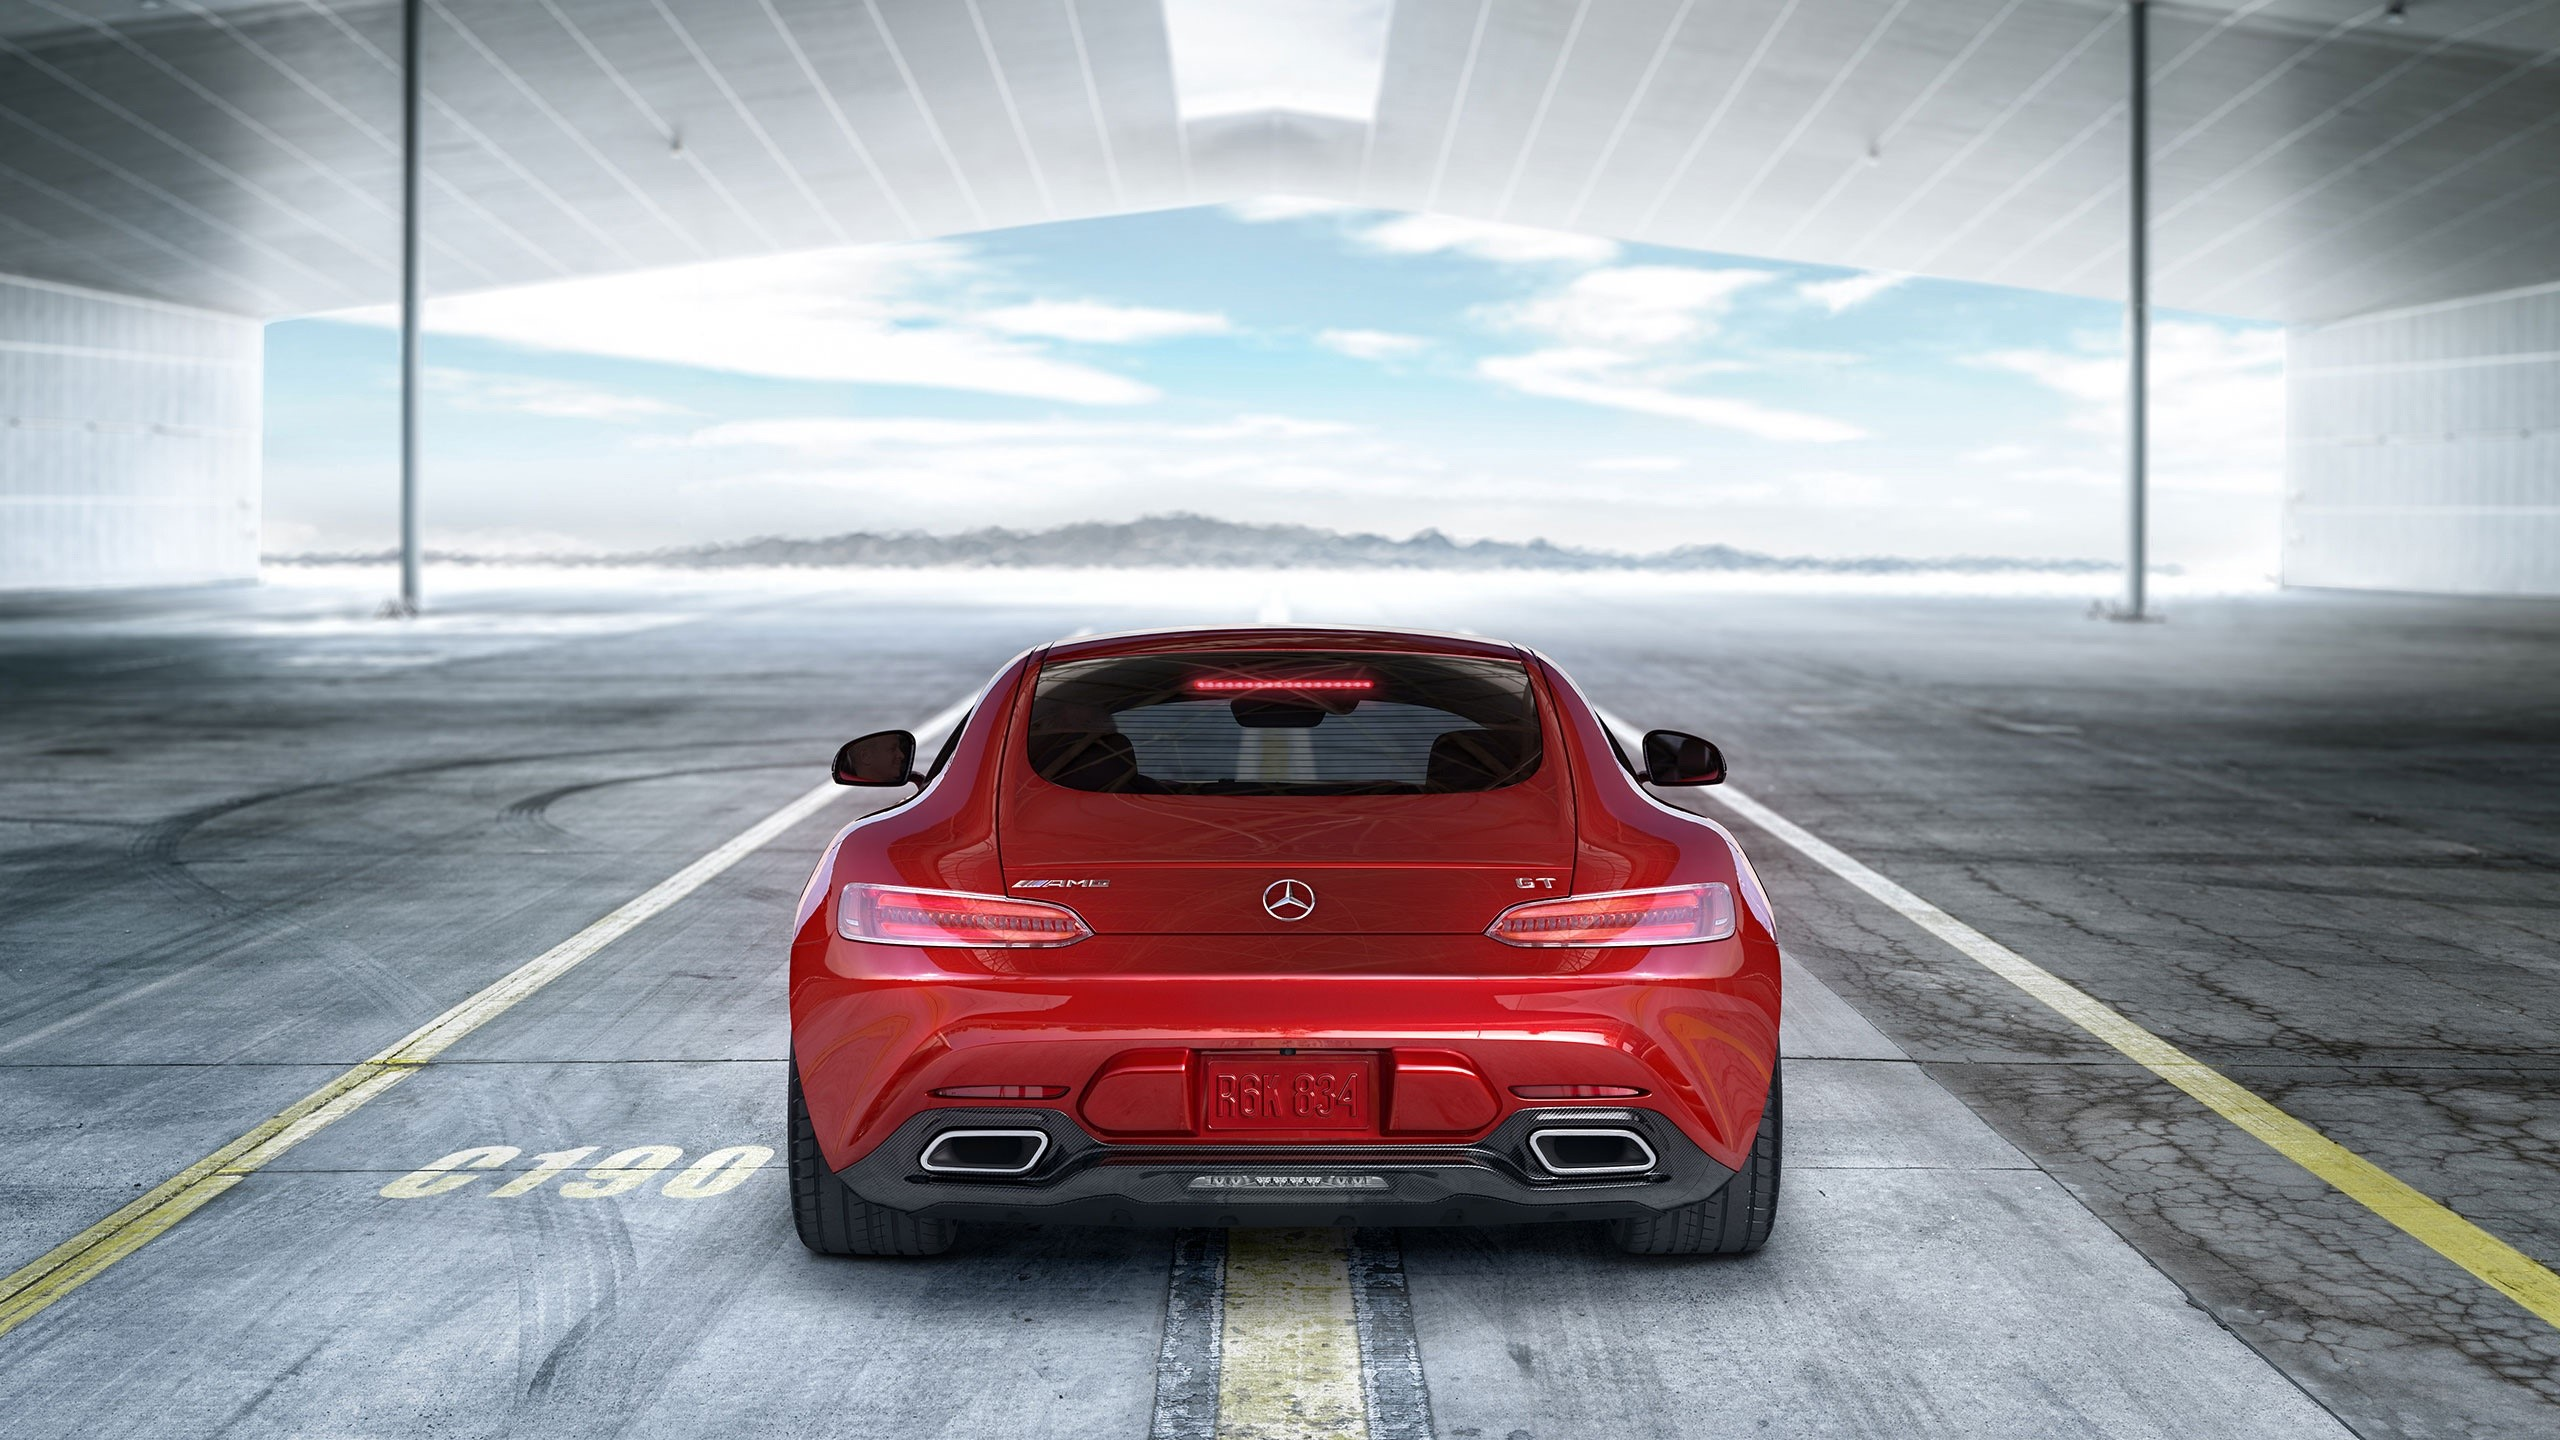 Wallpaper Mercedes AMG GT S rojo Images